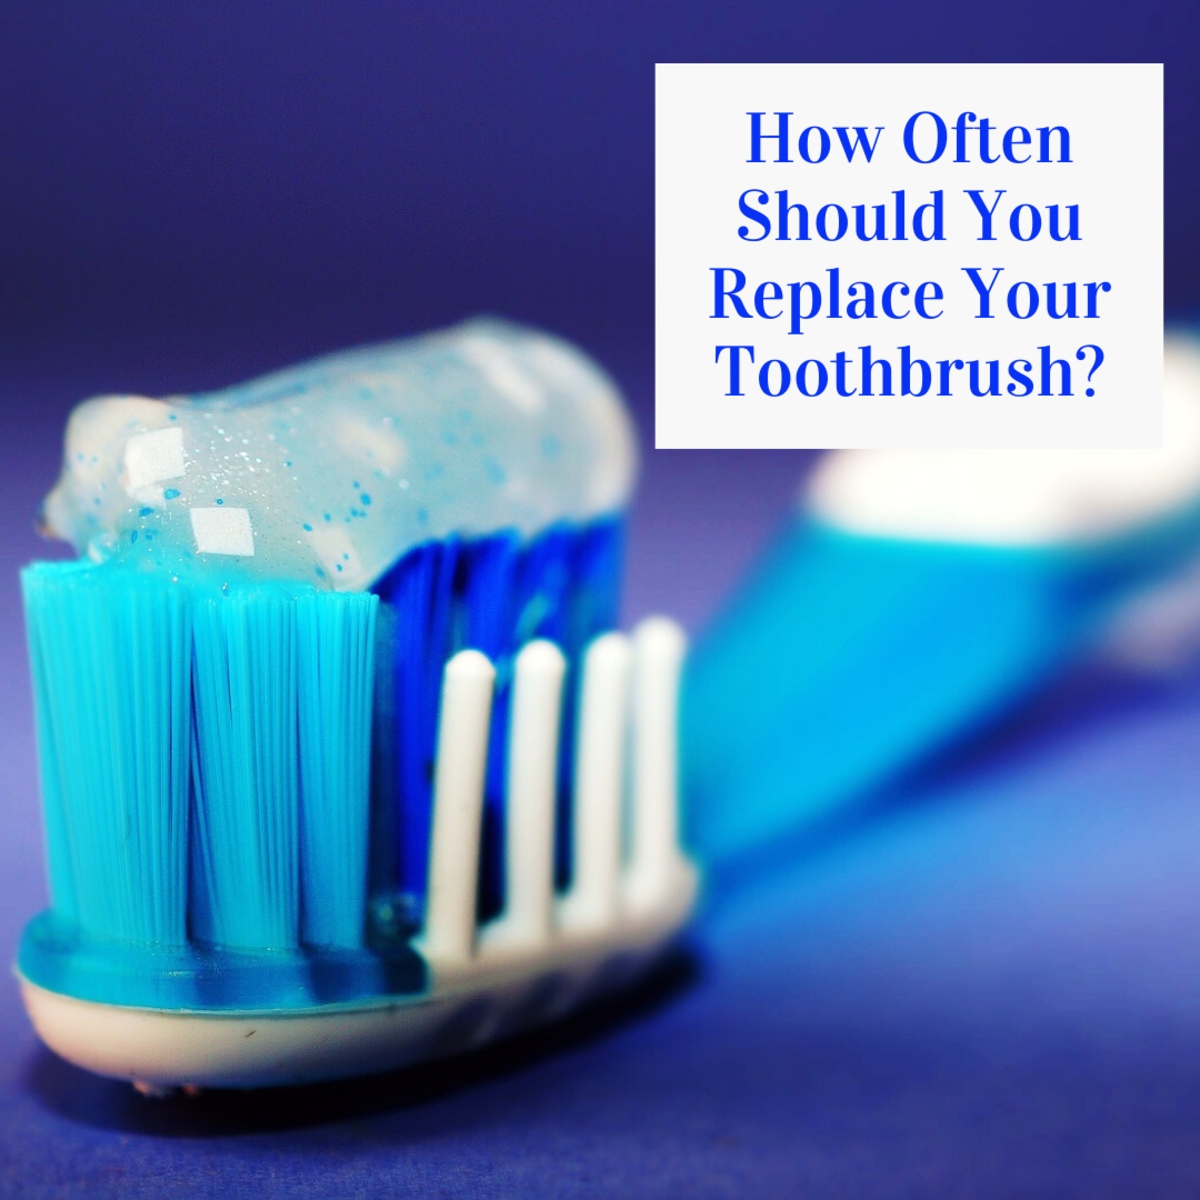 This guide will help you determine how often you should think about replacing your toothbrush.